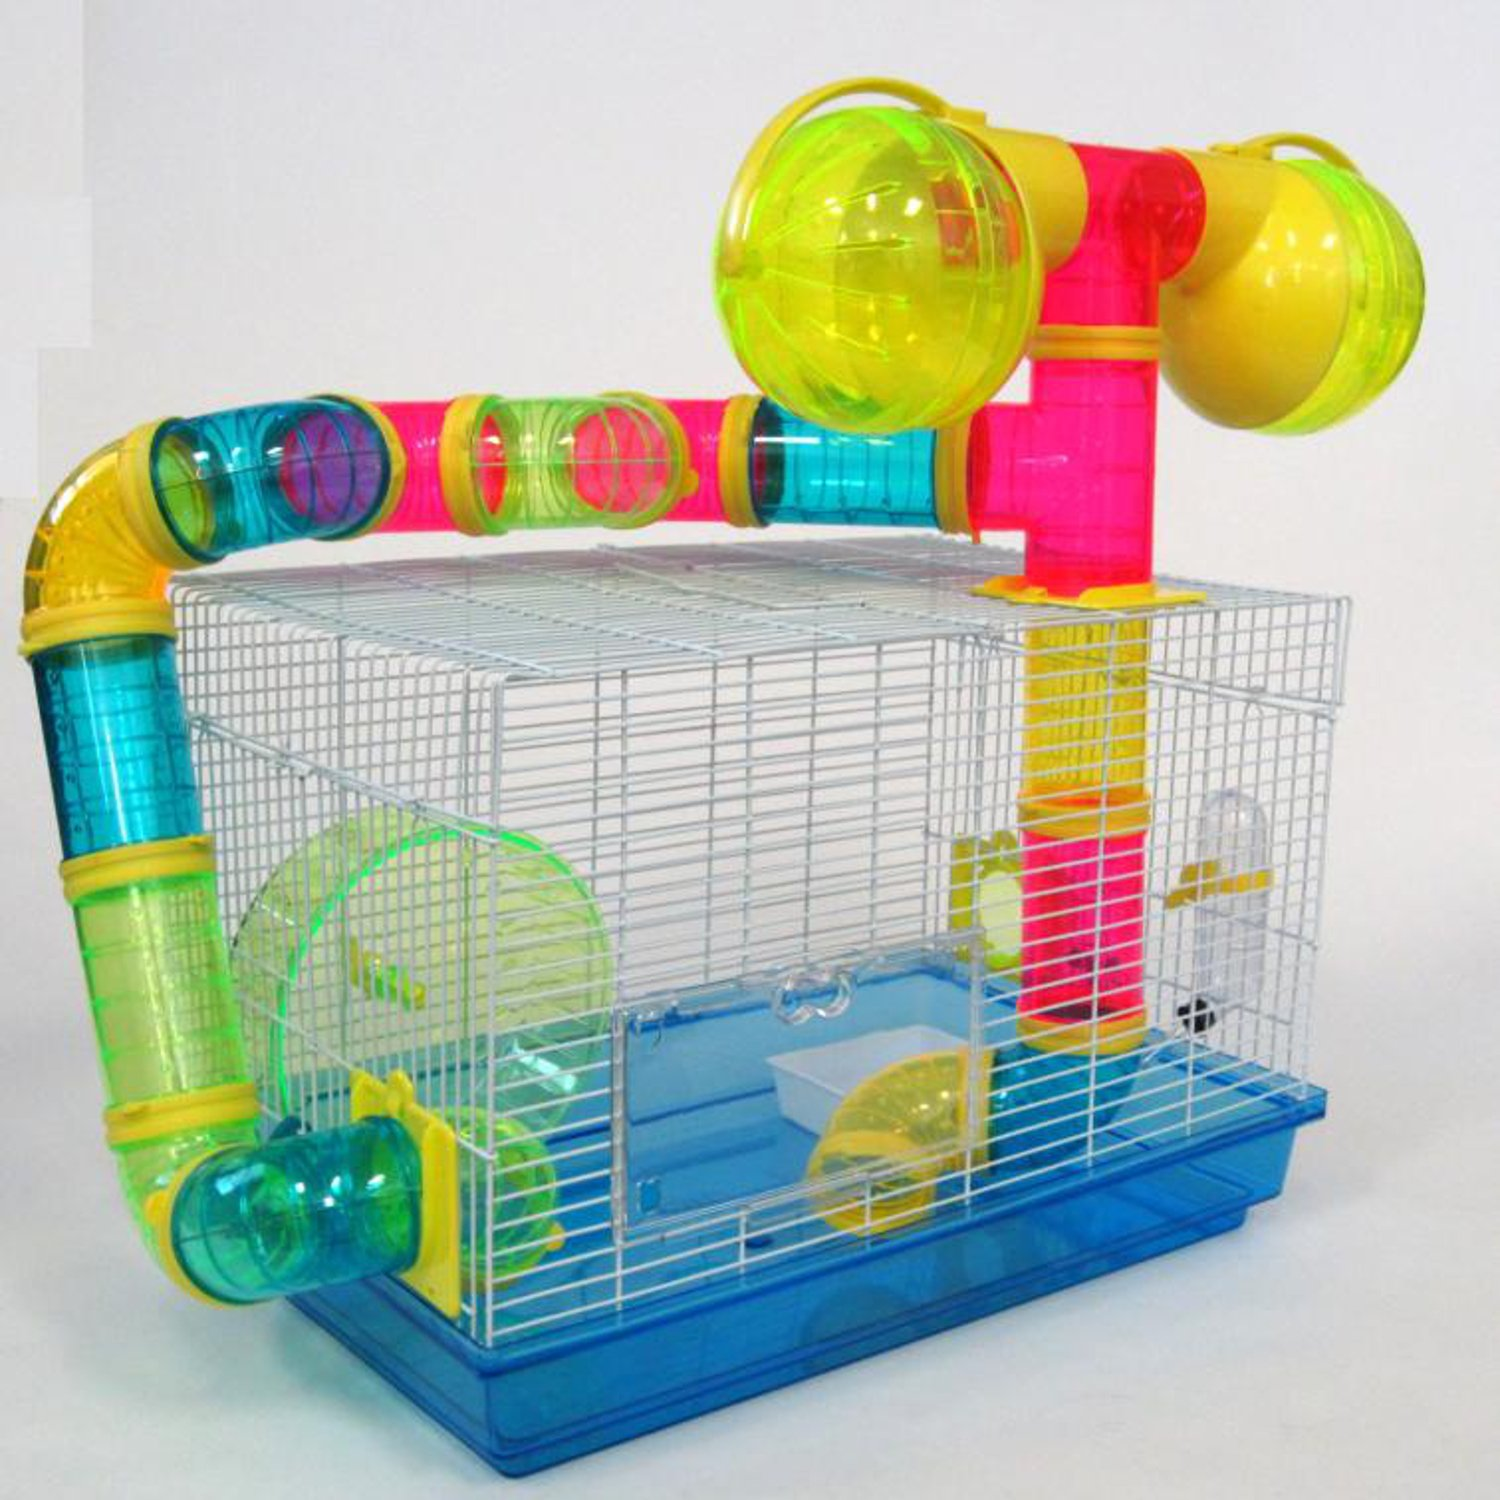 YML Tubed Hamster Cage in Blue